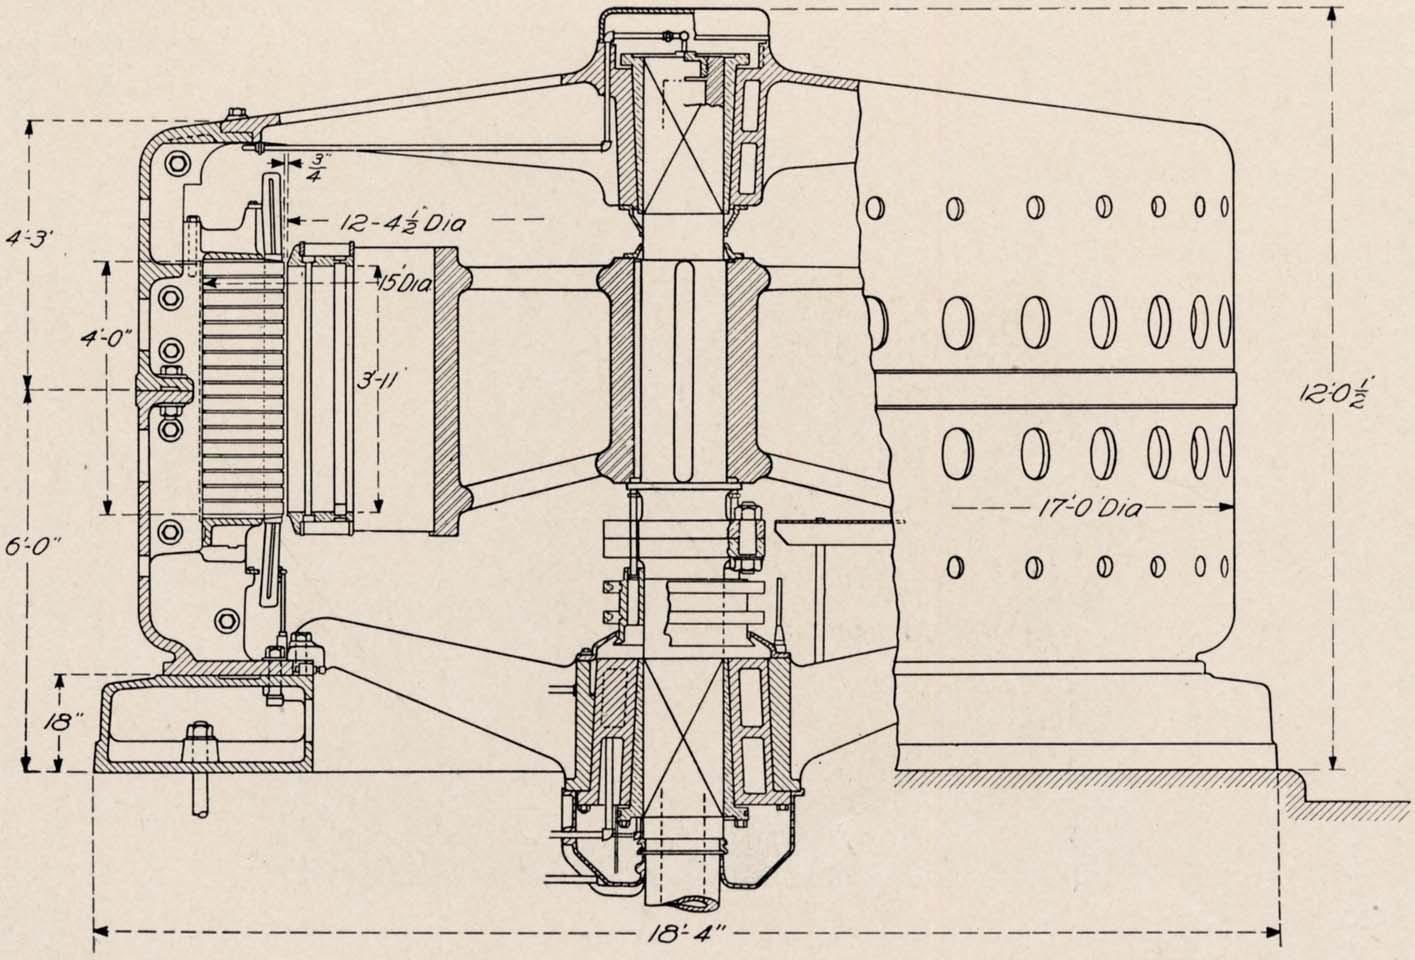 Niagara Falls Power Project 1888 Open Tesla Research 120 Force Engine Diagram